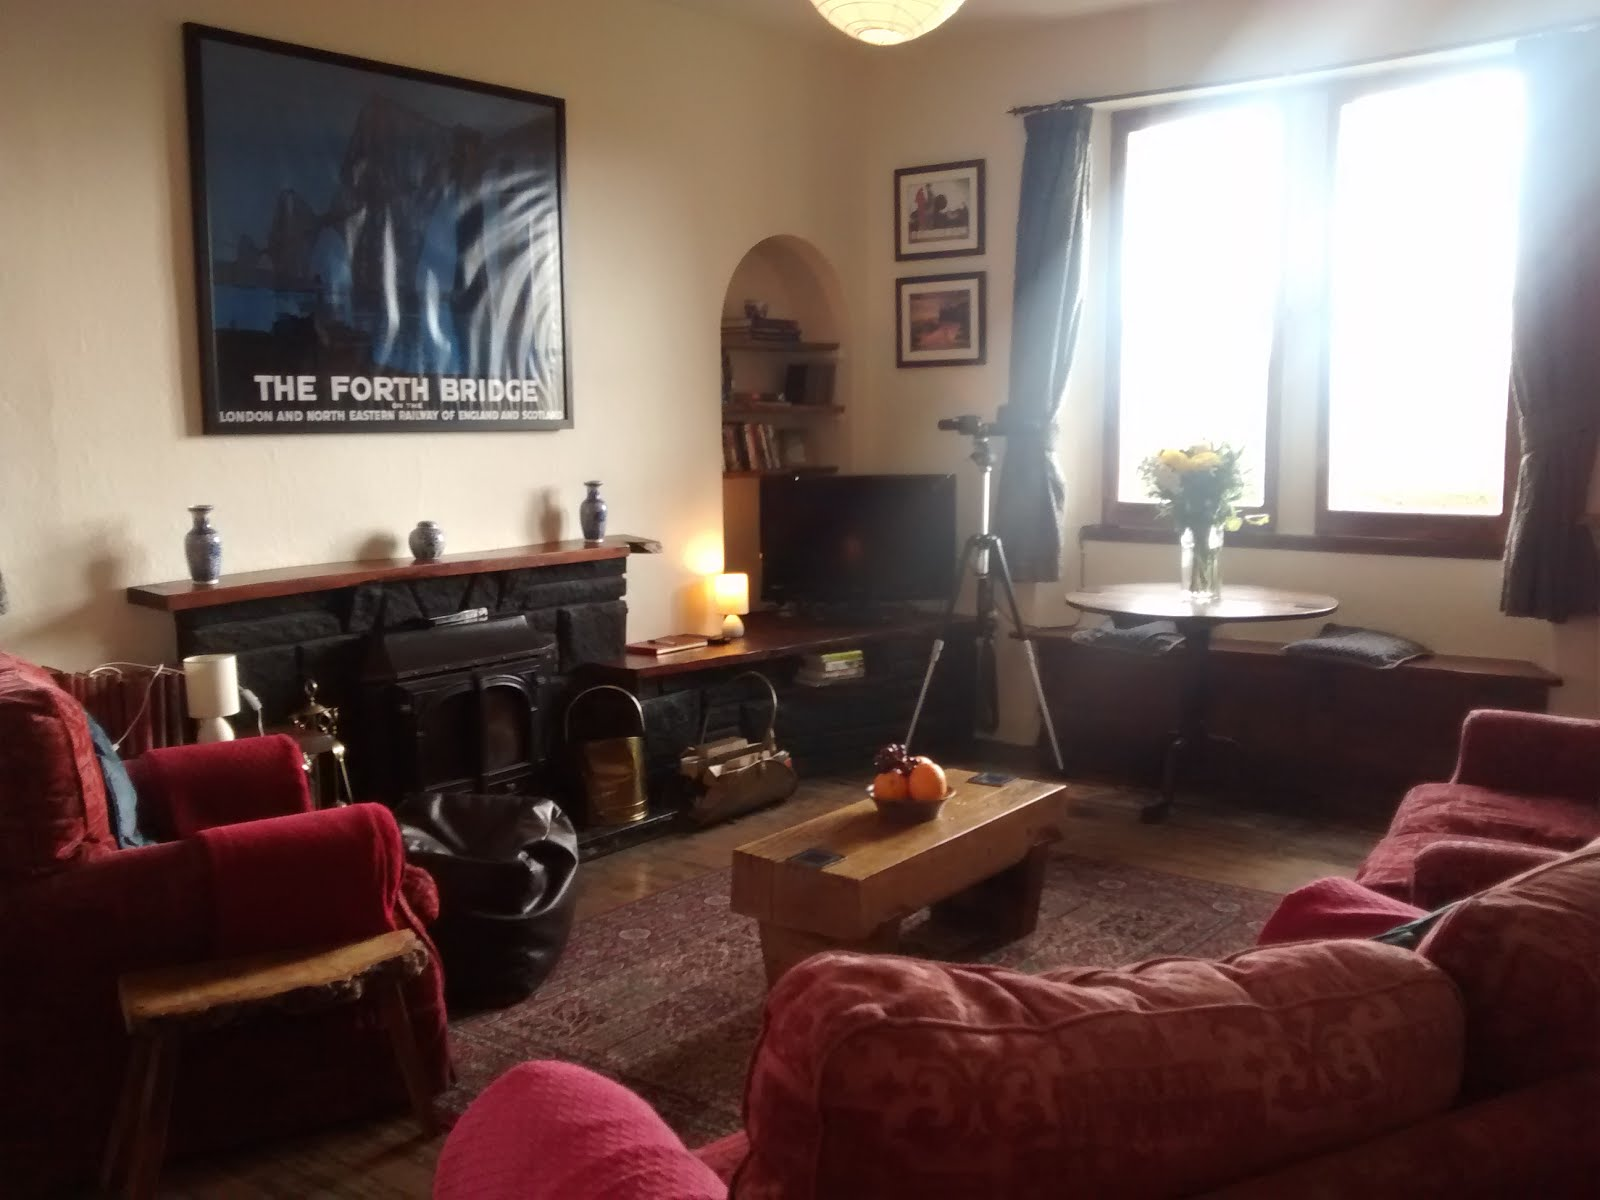 No.1. Holiday cottage near Edinburgh. Living room